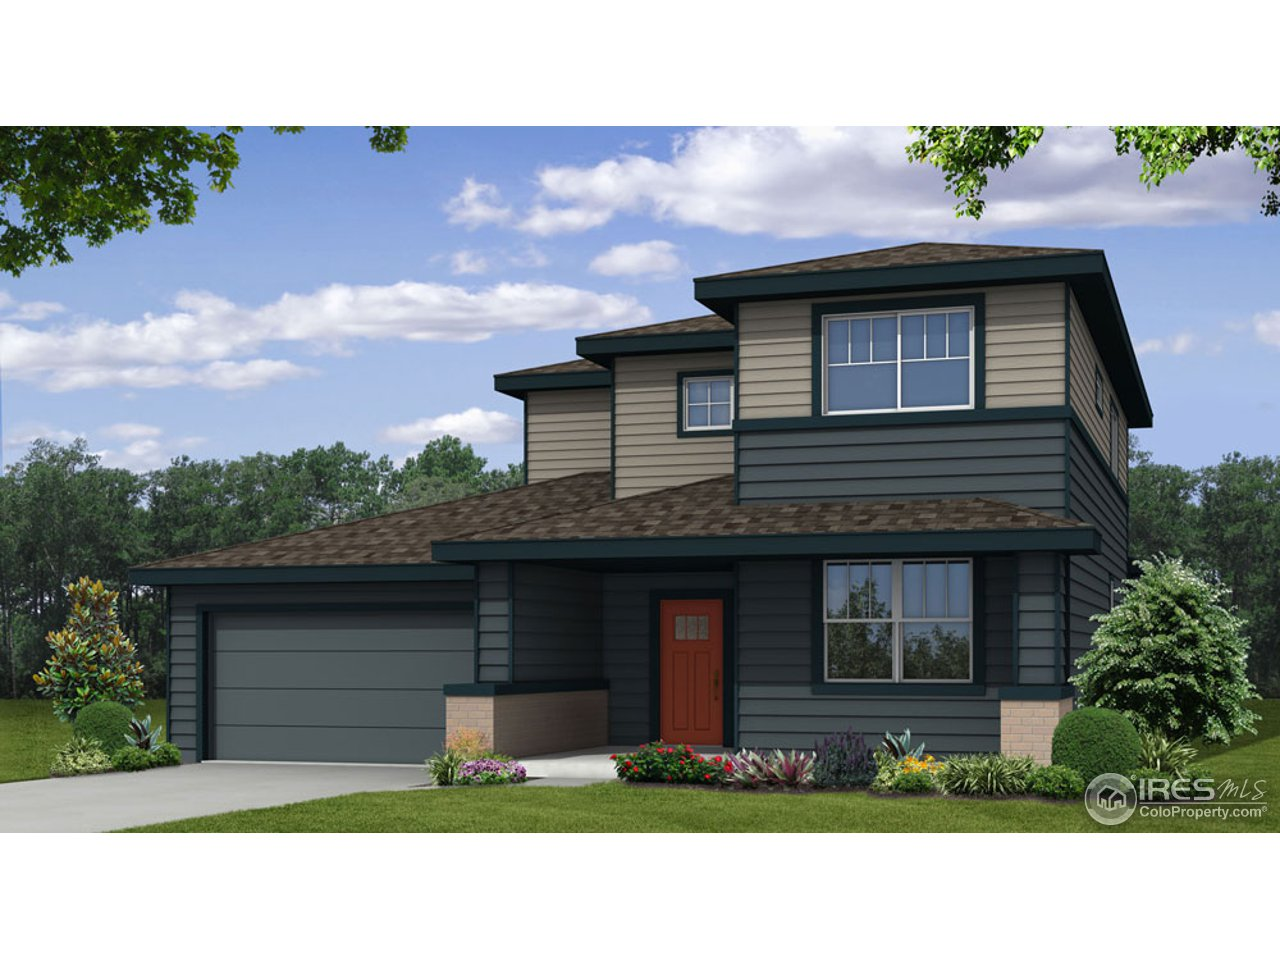 2162 Lager St, Fort Collins CO 80524